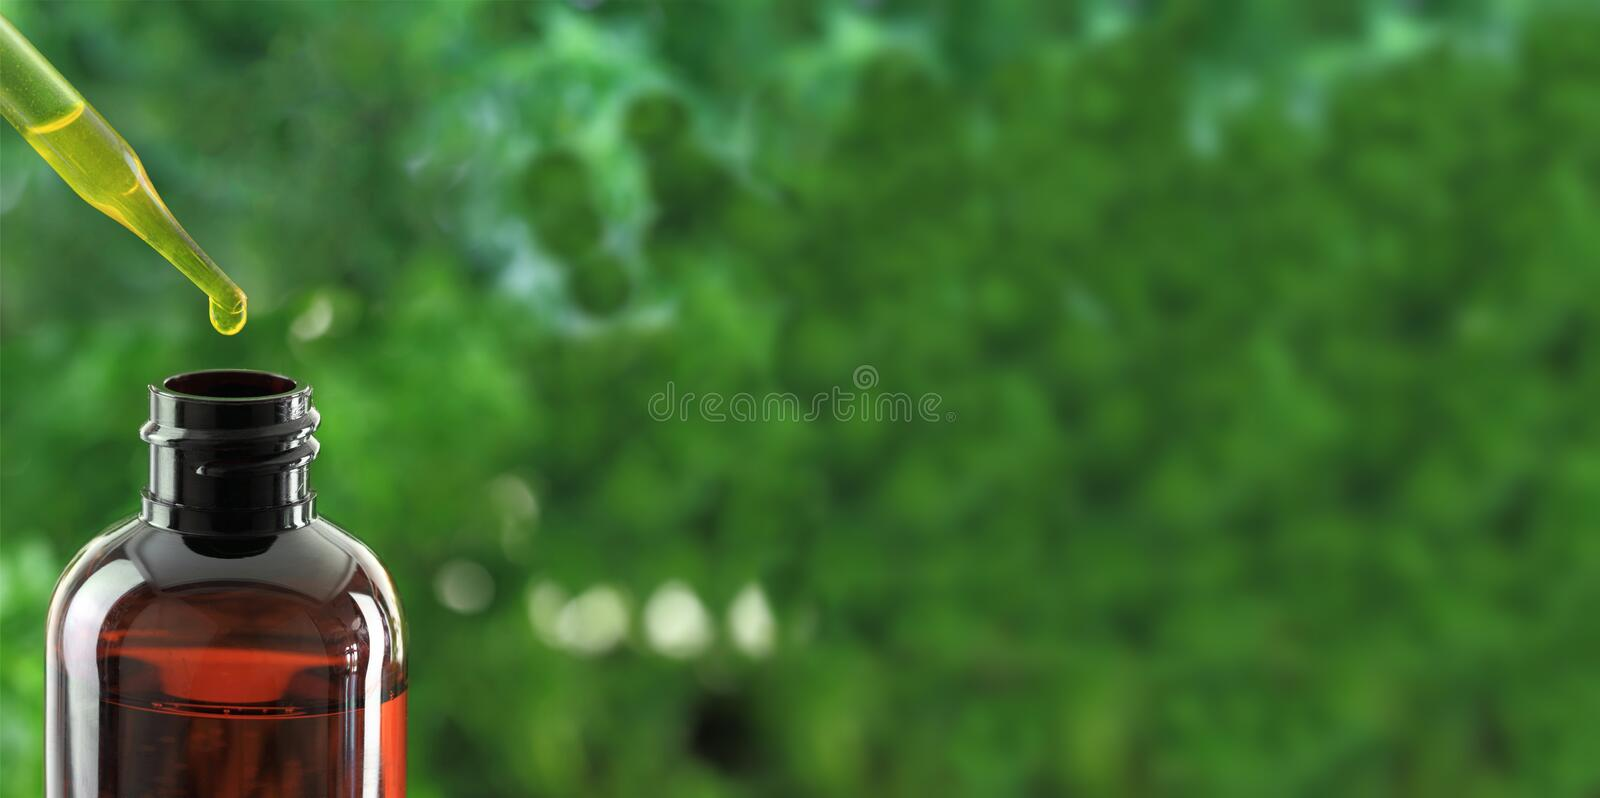 Dropper over essential oil bottle stock photography